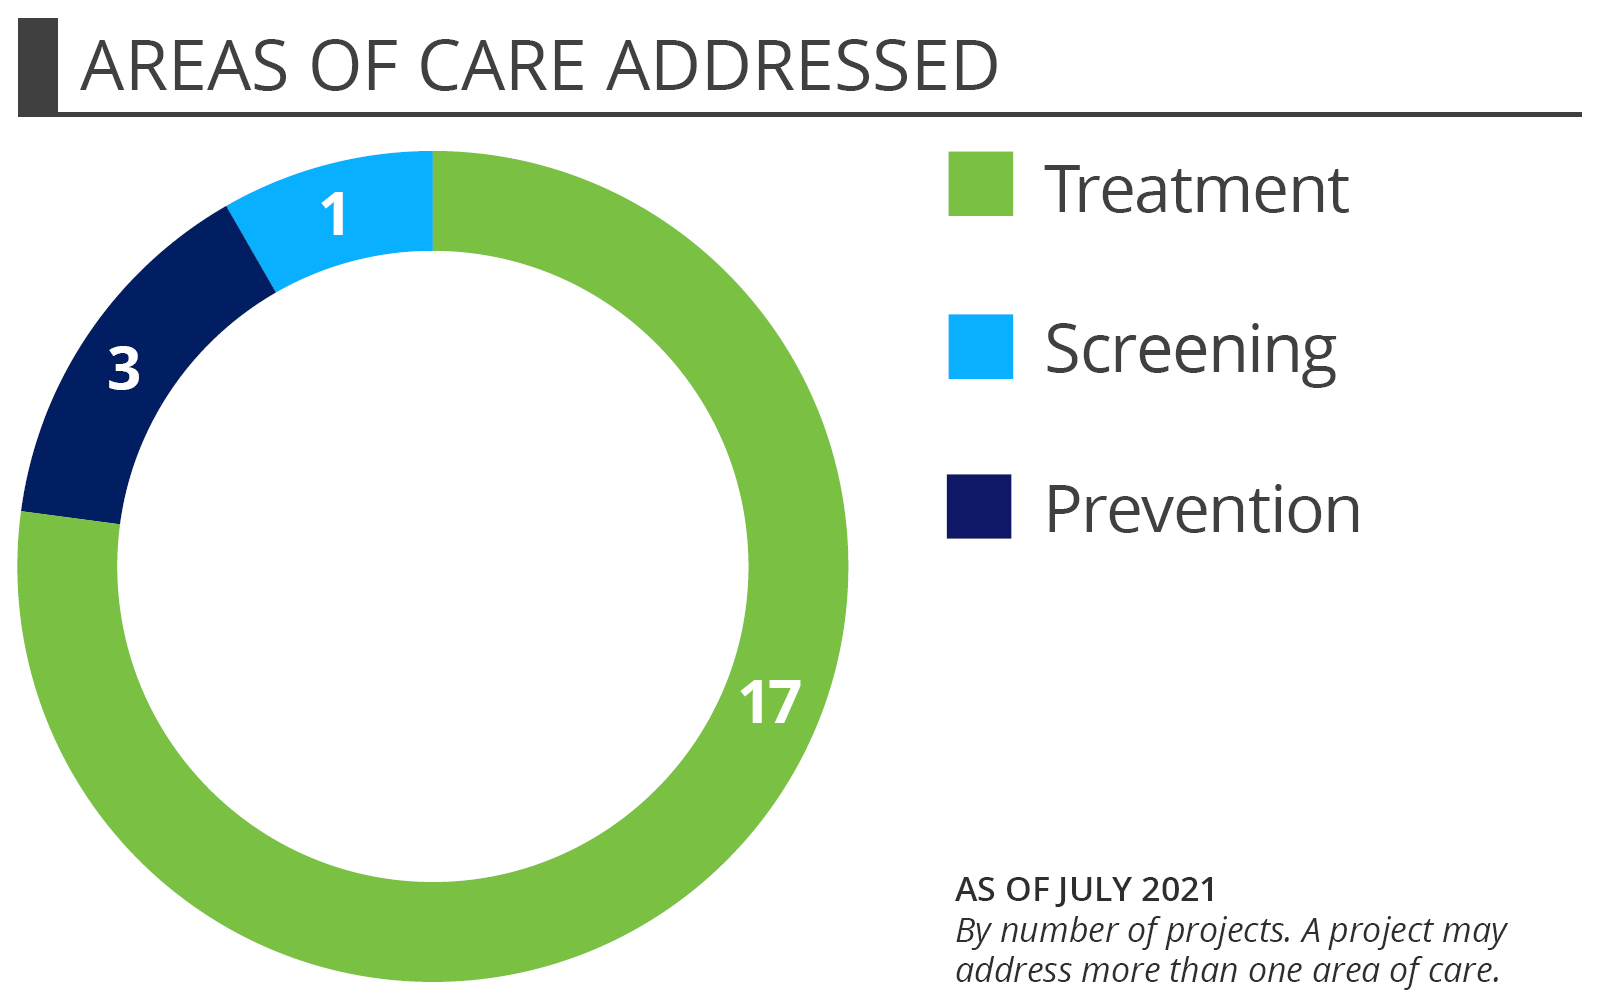 Obesity portfolio snapshot - Areas of care addressed